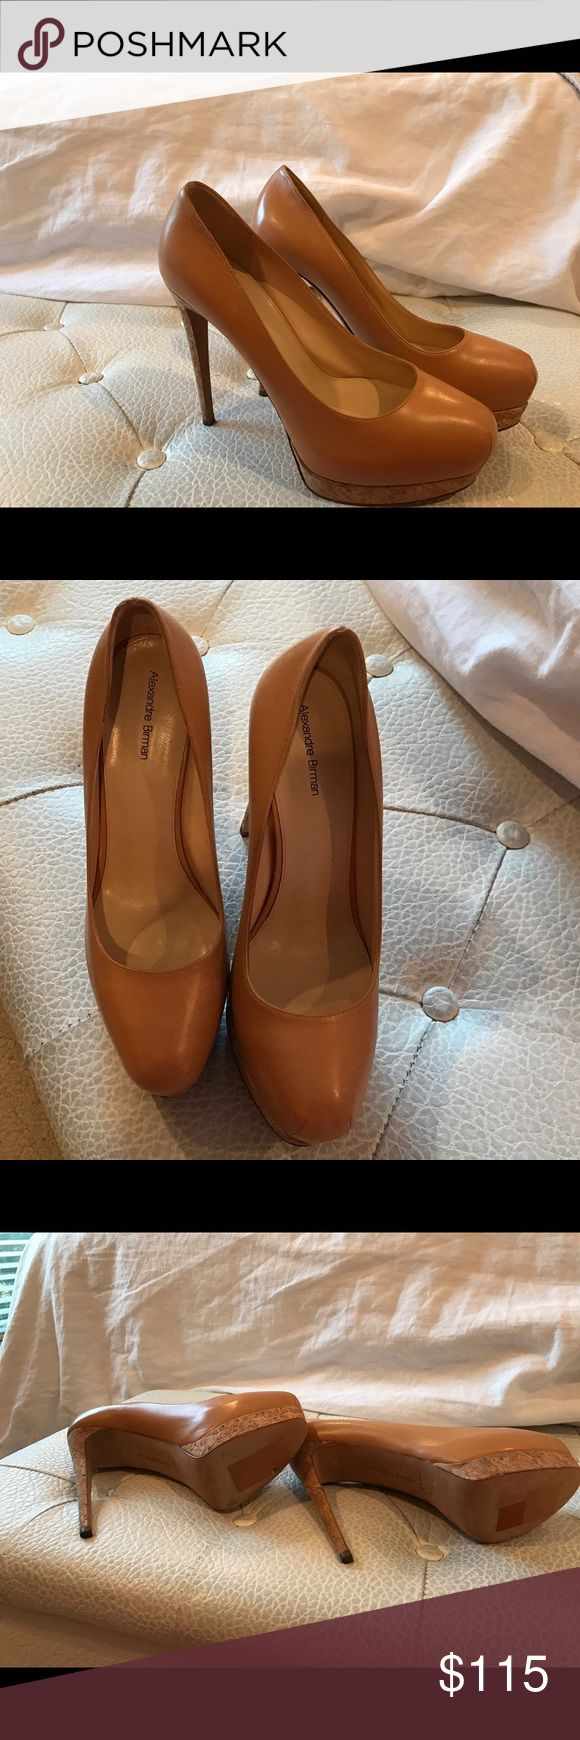 New nude Alexandre Birman cork platform pumps These are beautiful, perfect caramel colored cork pumps. They are perfect neutral for spring! Alexandre Birman Shoes Platforms